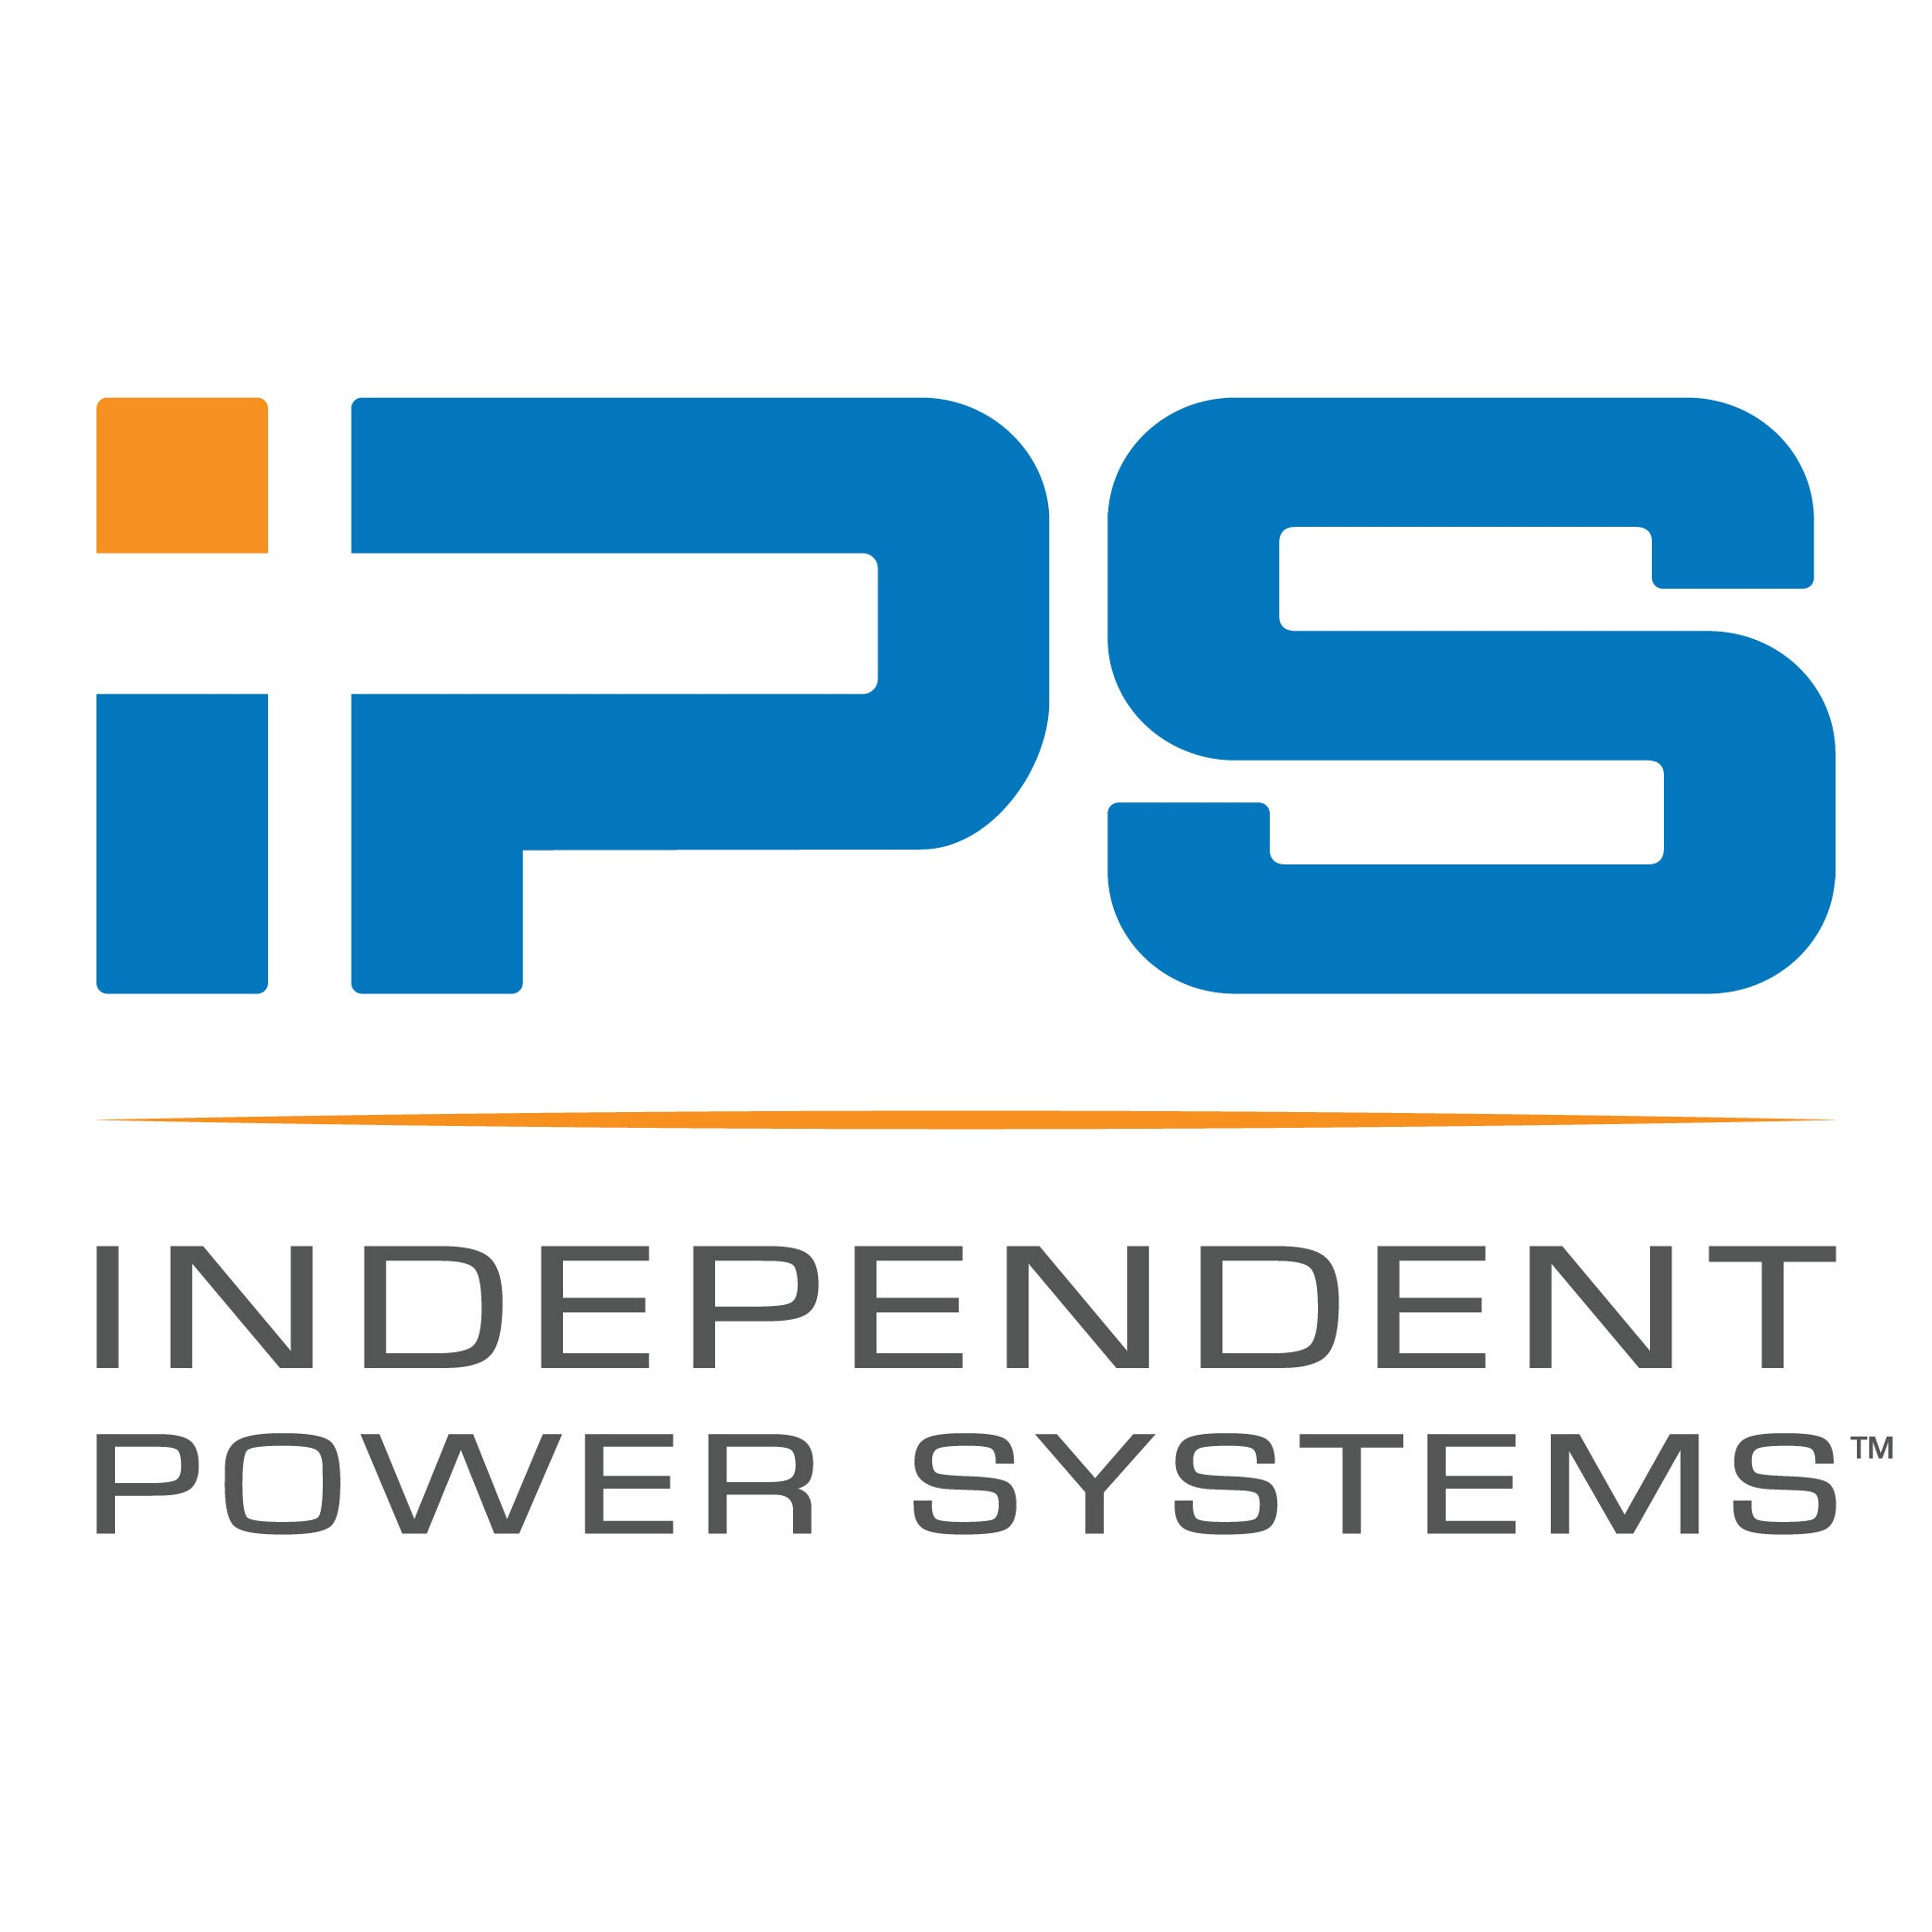 Independent Power Systems (IPS)'s company logo